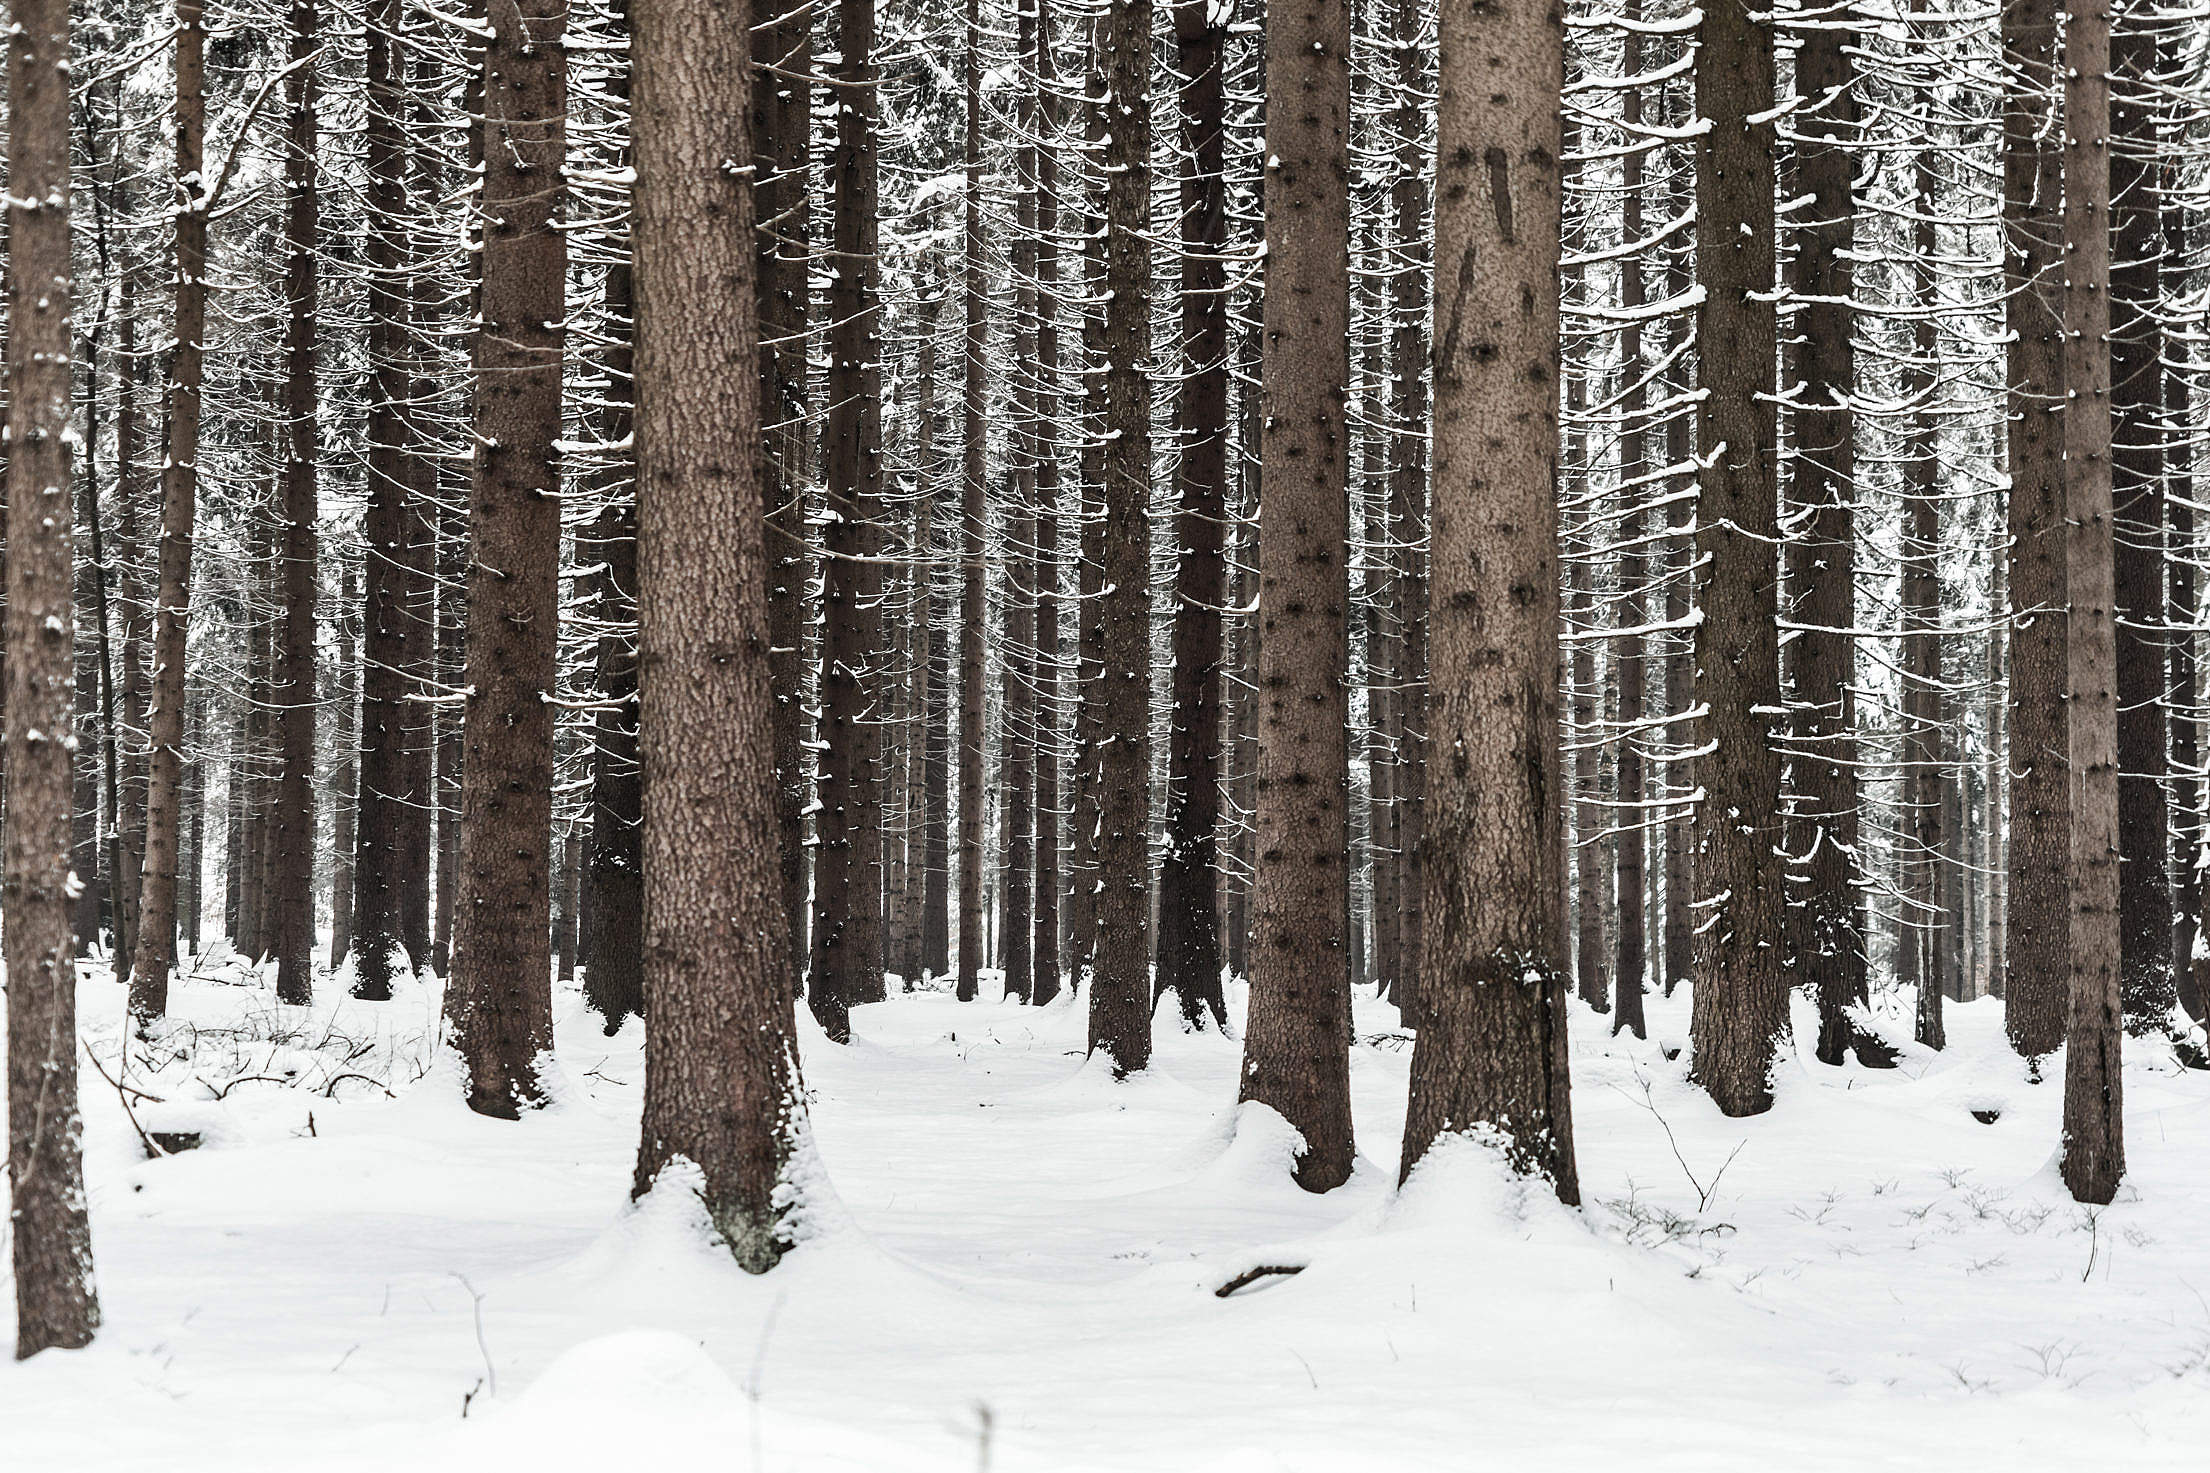 Tree Trunks in Winter Forest Snow in Woods Free Stock Photo